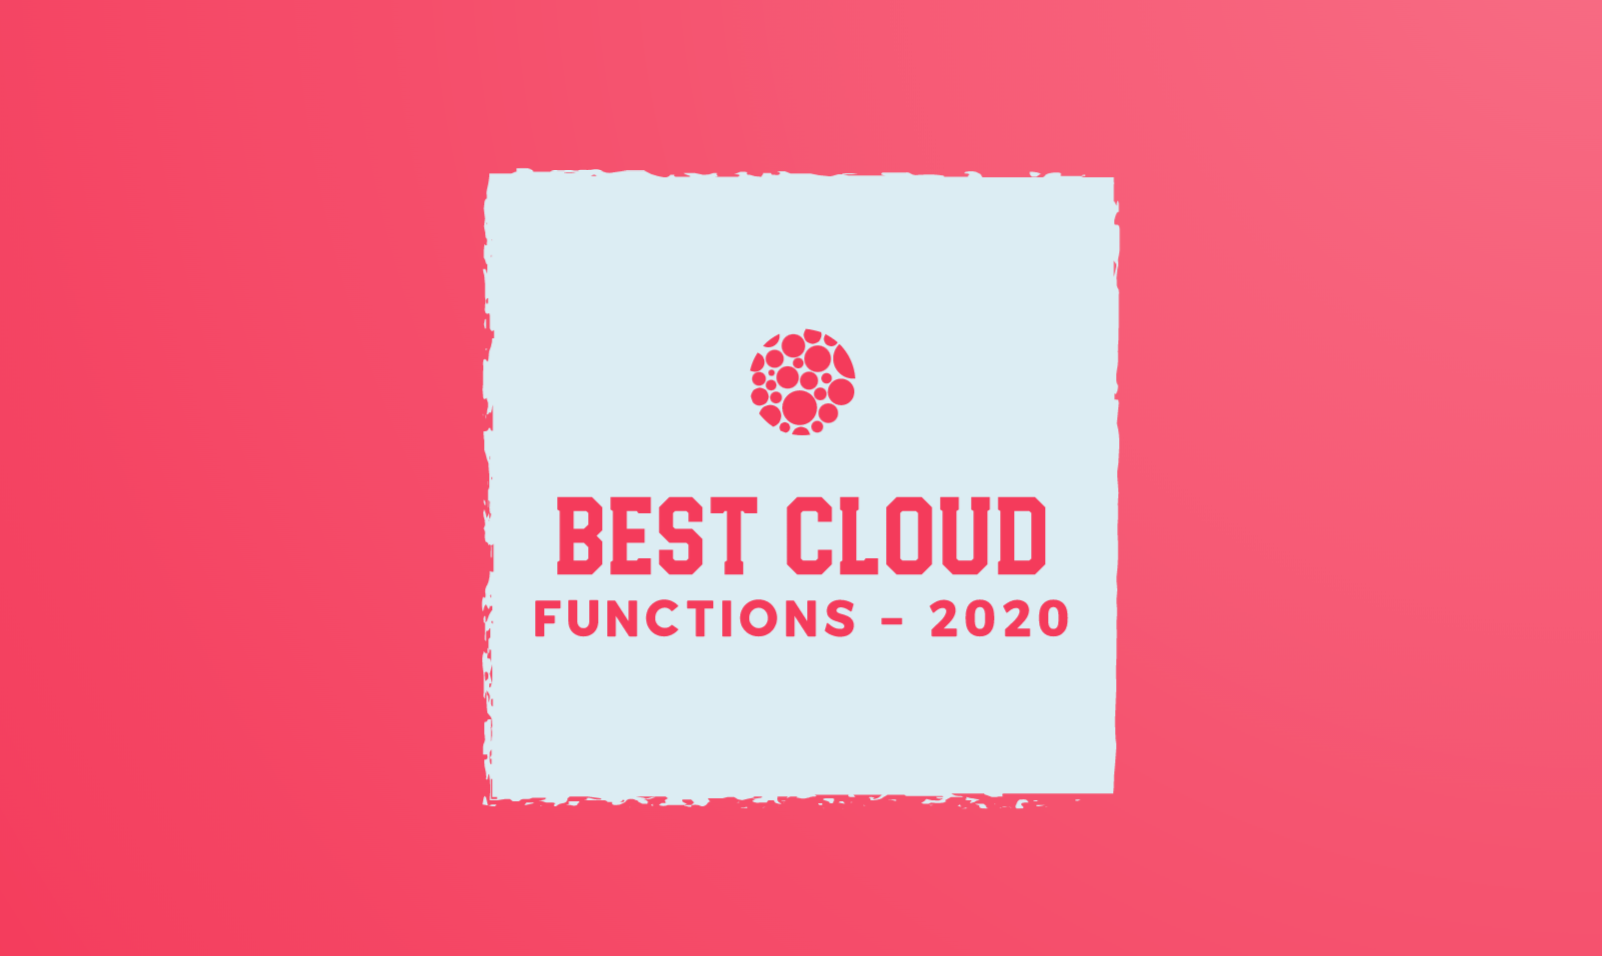 Best Cloud Functions services to use in 2020